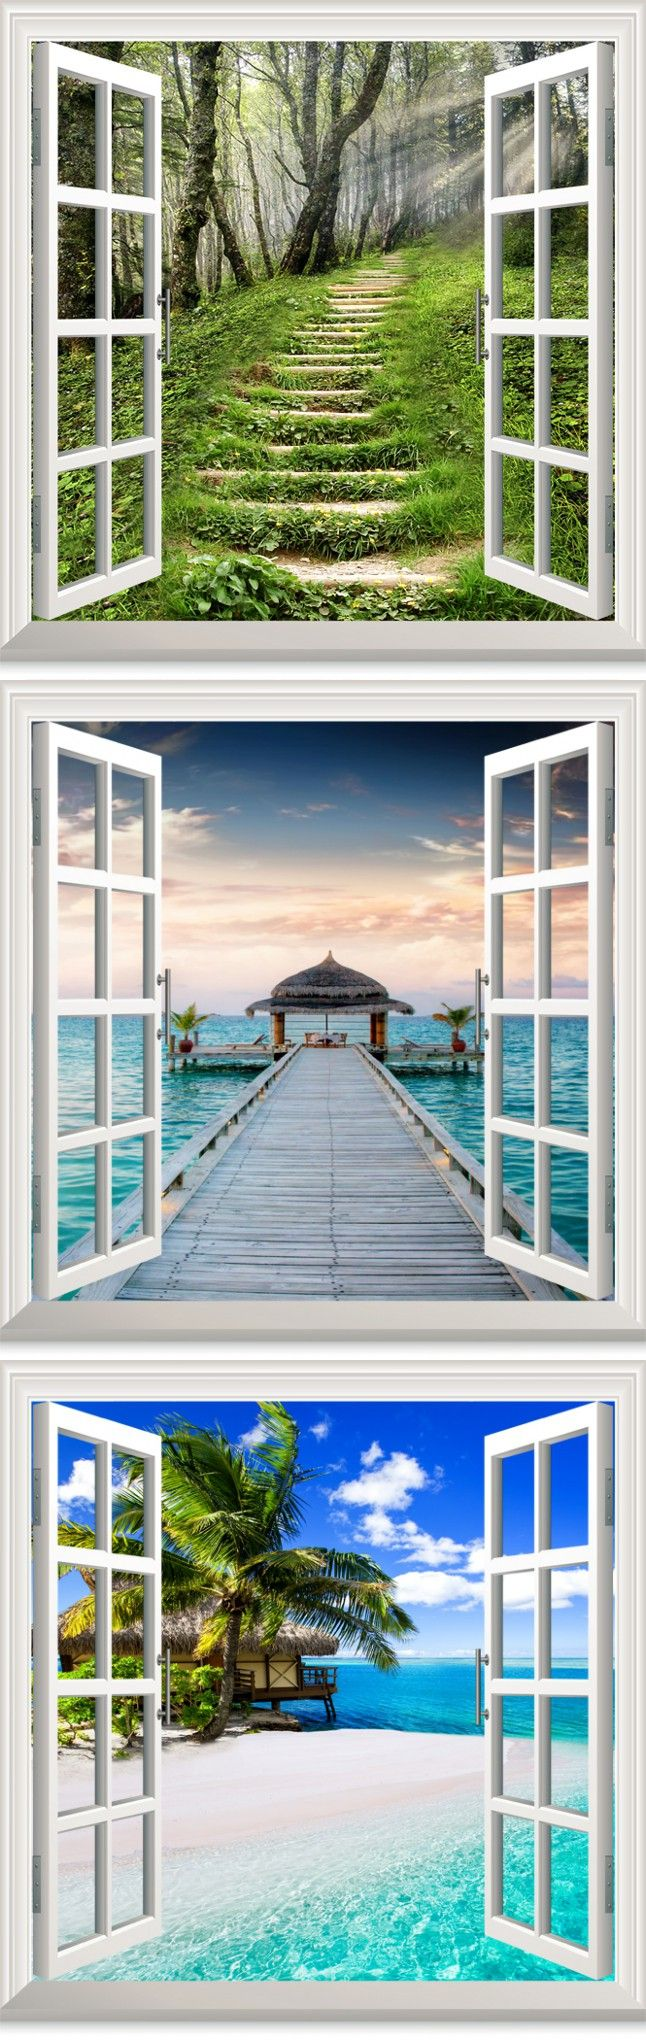 Fake Window Wall Stickers Romantic Bedroom Bedside Wall Stickers Creative Home Living Room Background Wallpaper Room Decoration $22.99